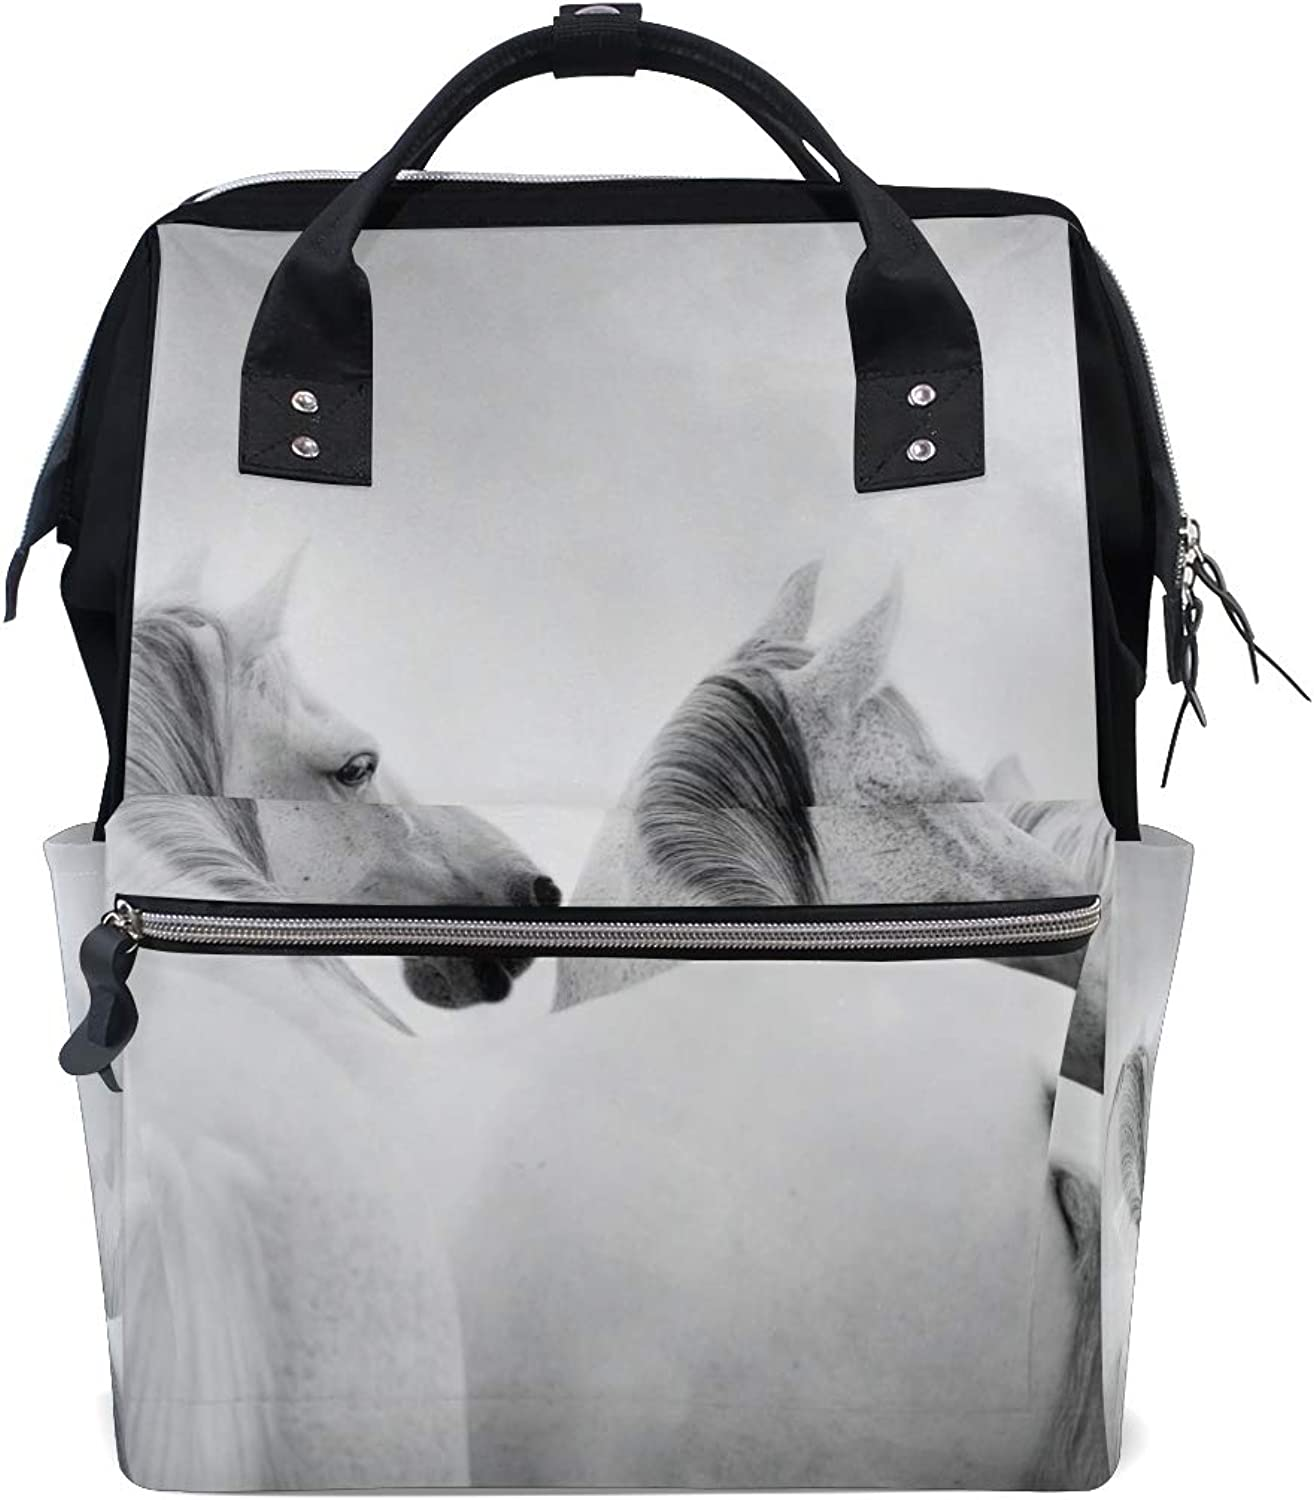 fb749fb4060b Backpacks Beautiful White Horse School Bag Canvas Daypack FANTAZIO ...